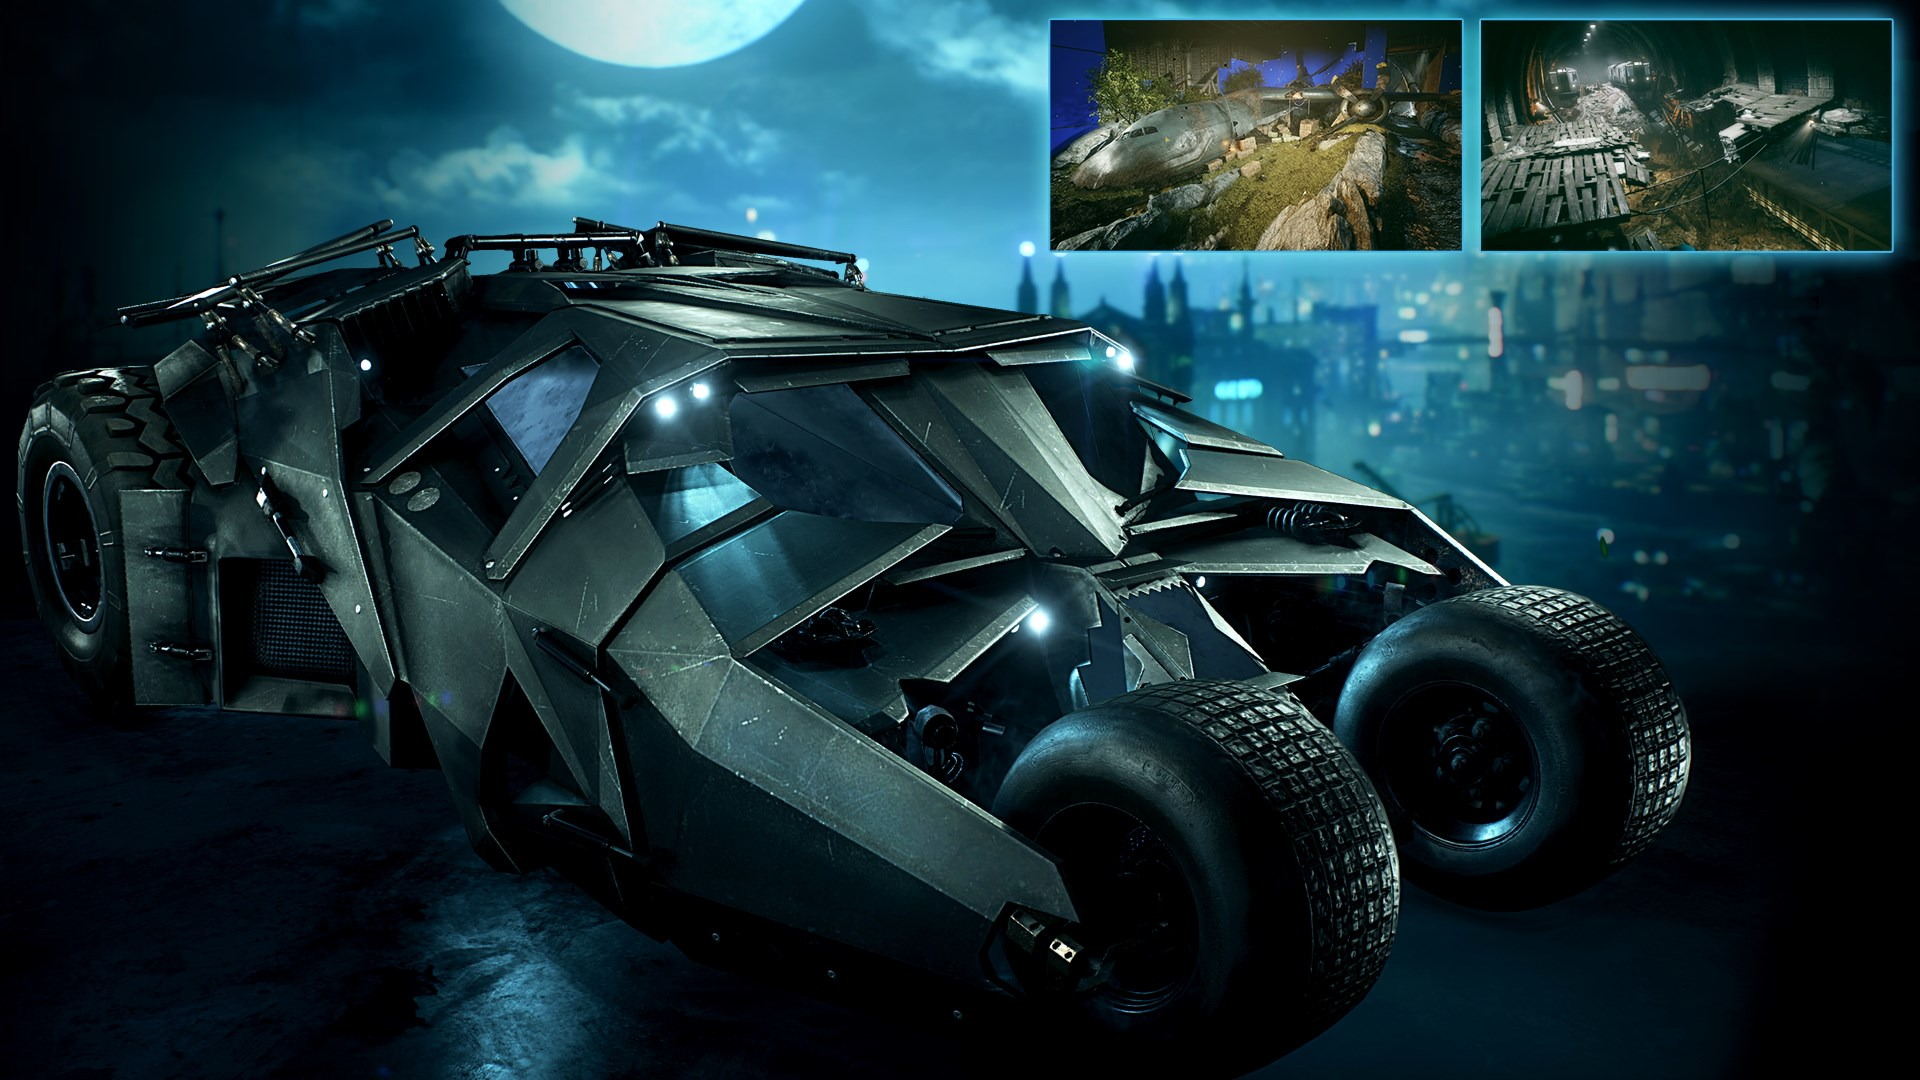 2008 Tumbler Batmobile Pack